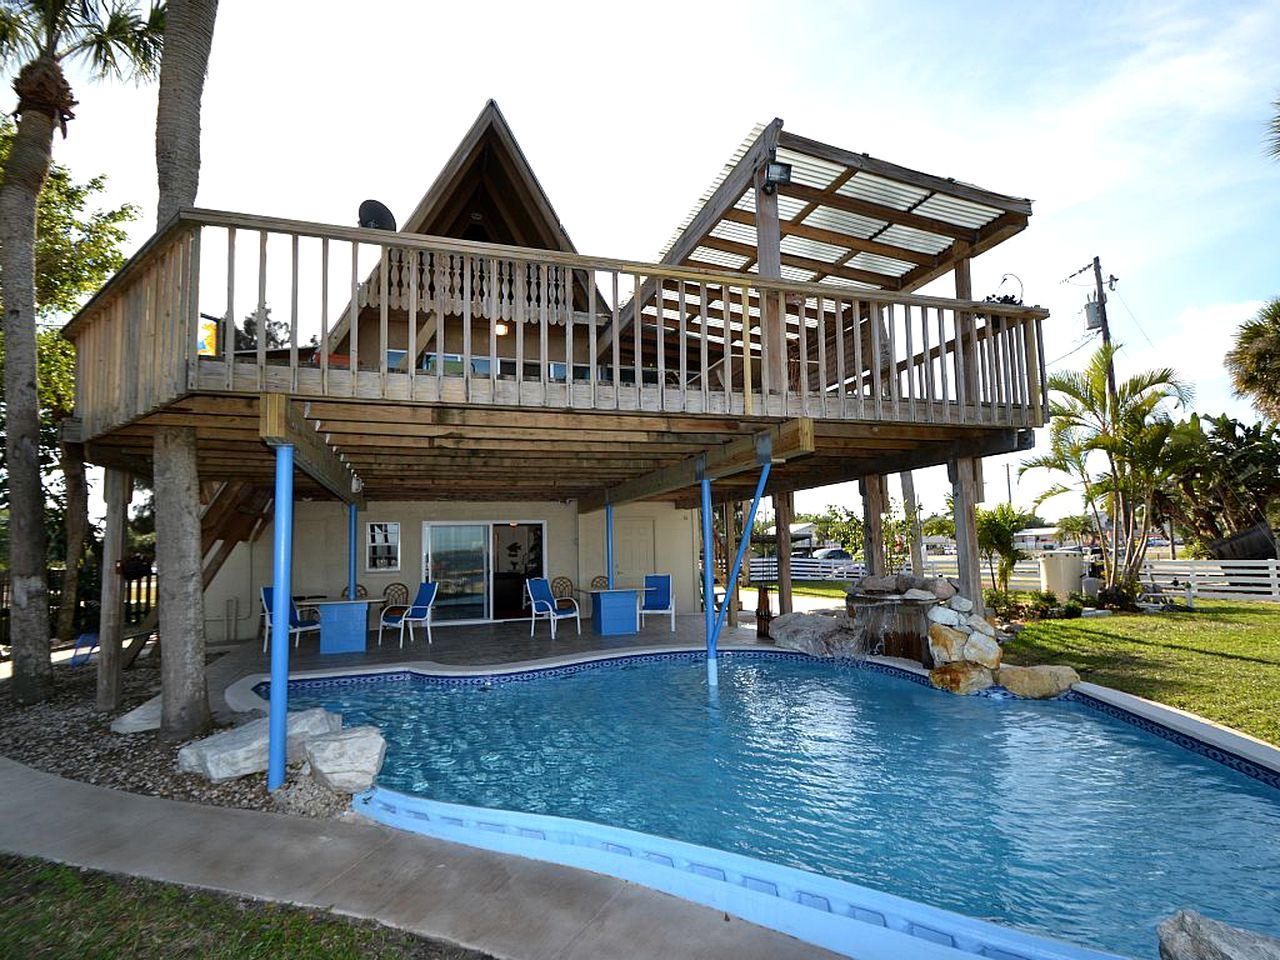 Waterfront chalet rental: Grant, FL